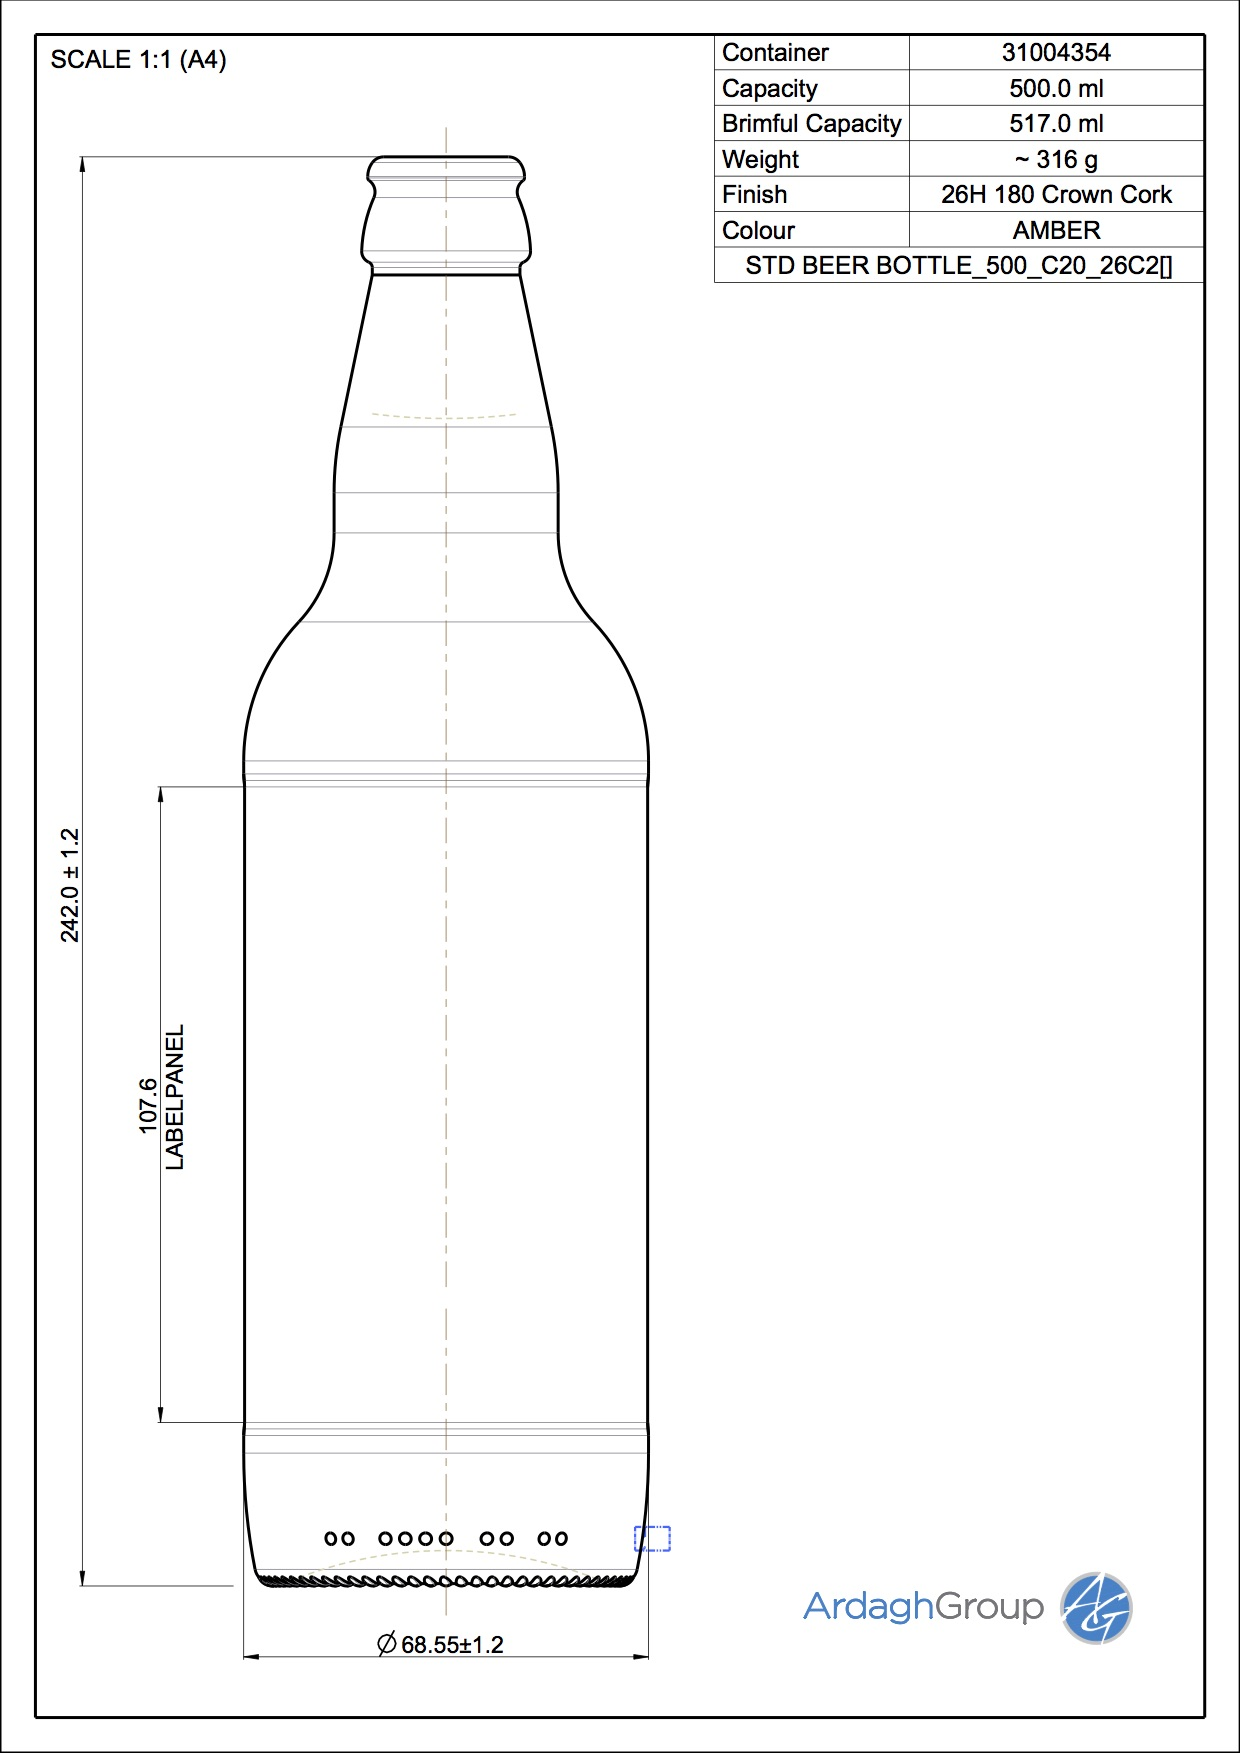 STD BEER BOTTLE_500_C20_26C2